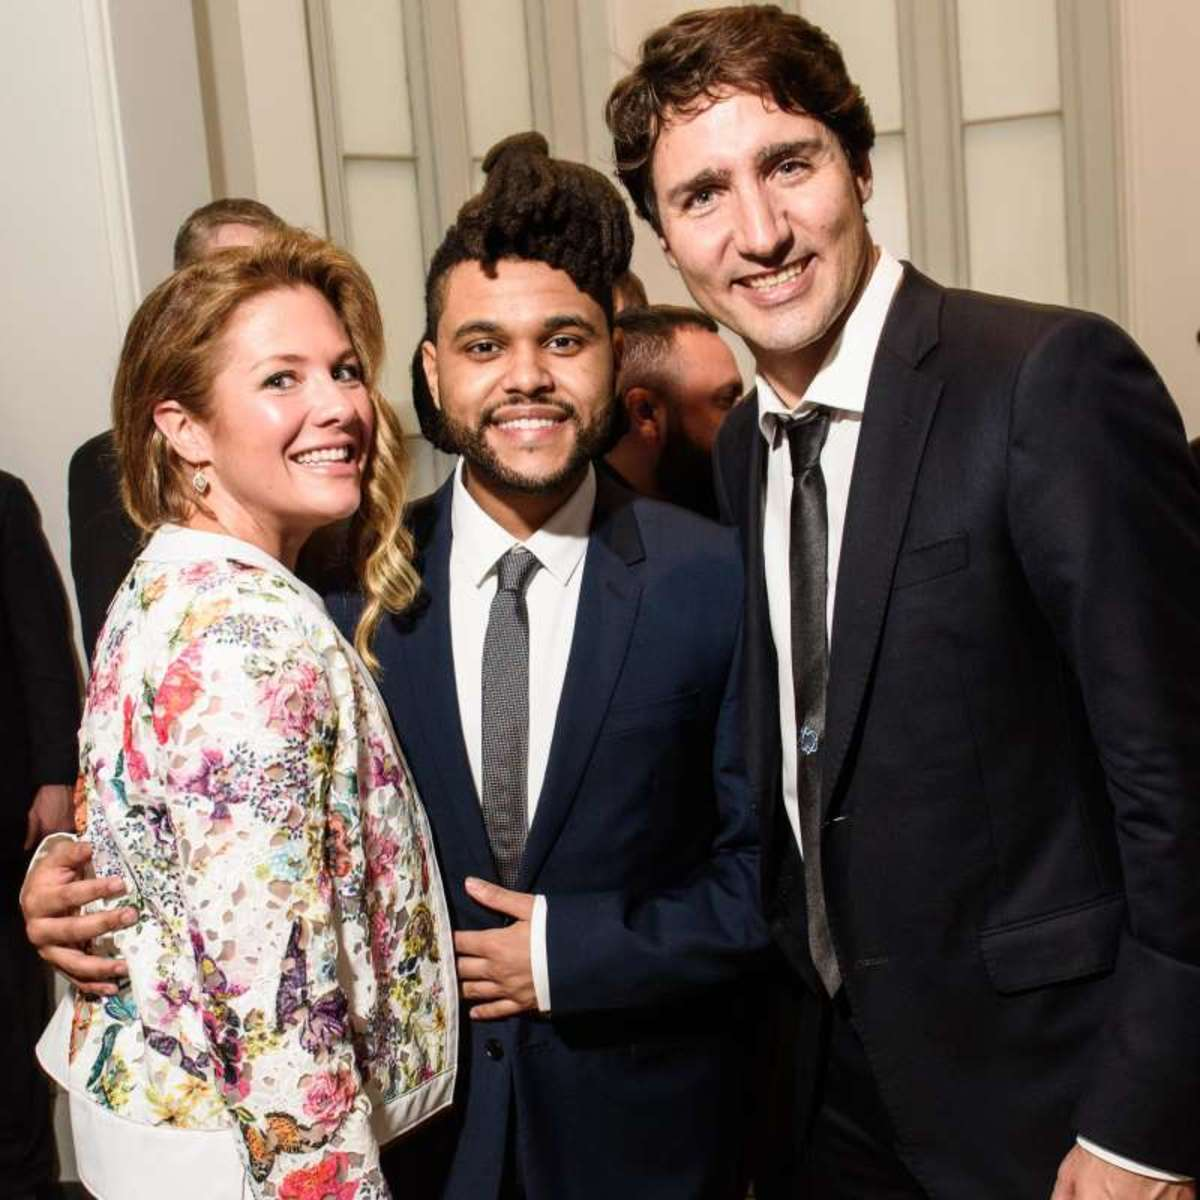 The Weeknd with Canadian Prime Minister Justin Trudeau and wife Sophie at the Canada 2020 gala in Washington DC